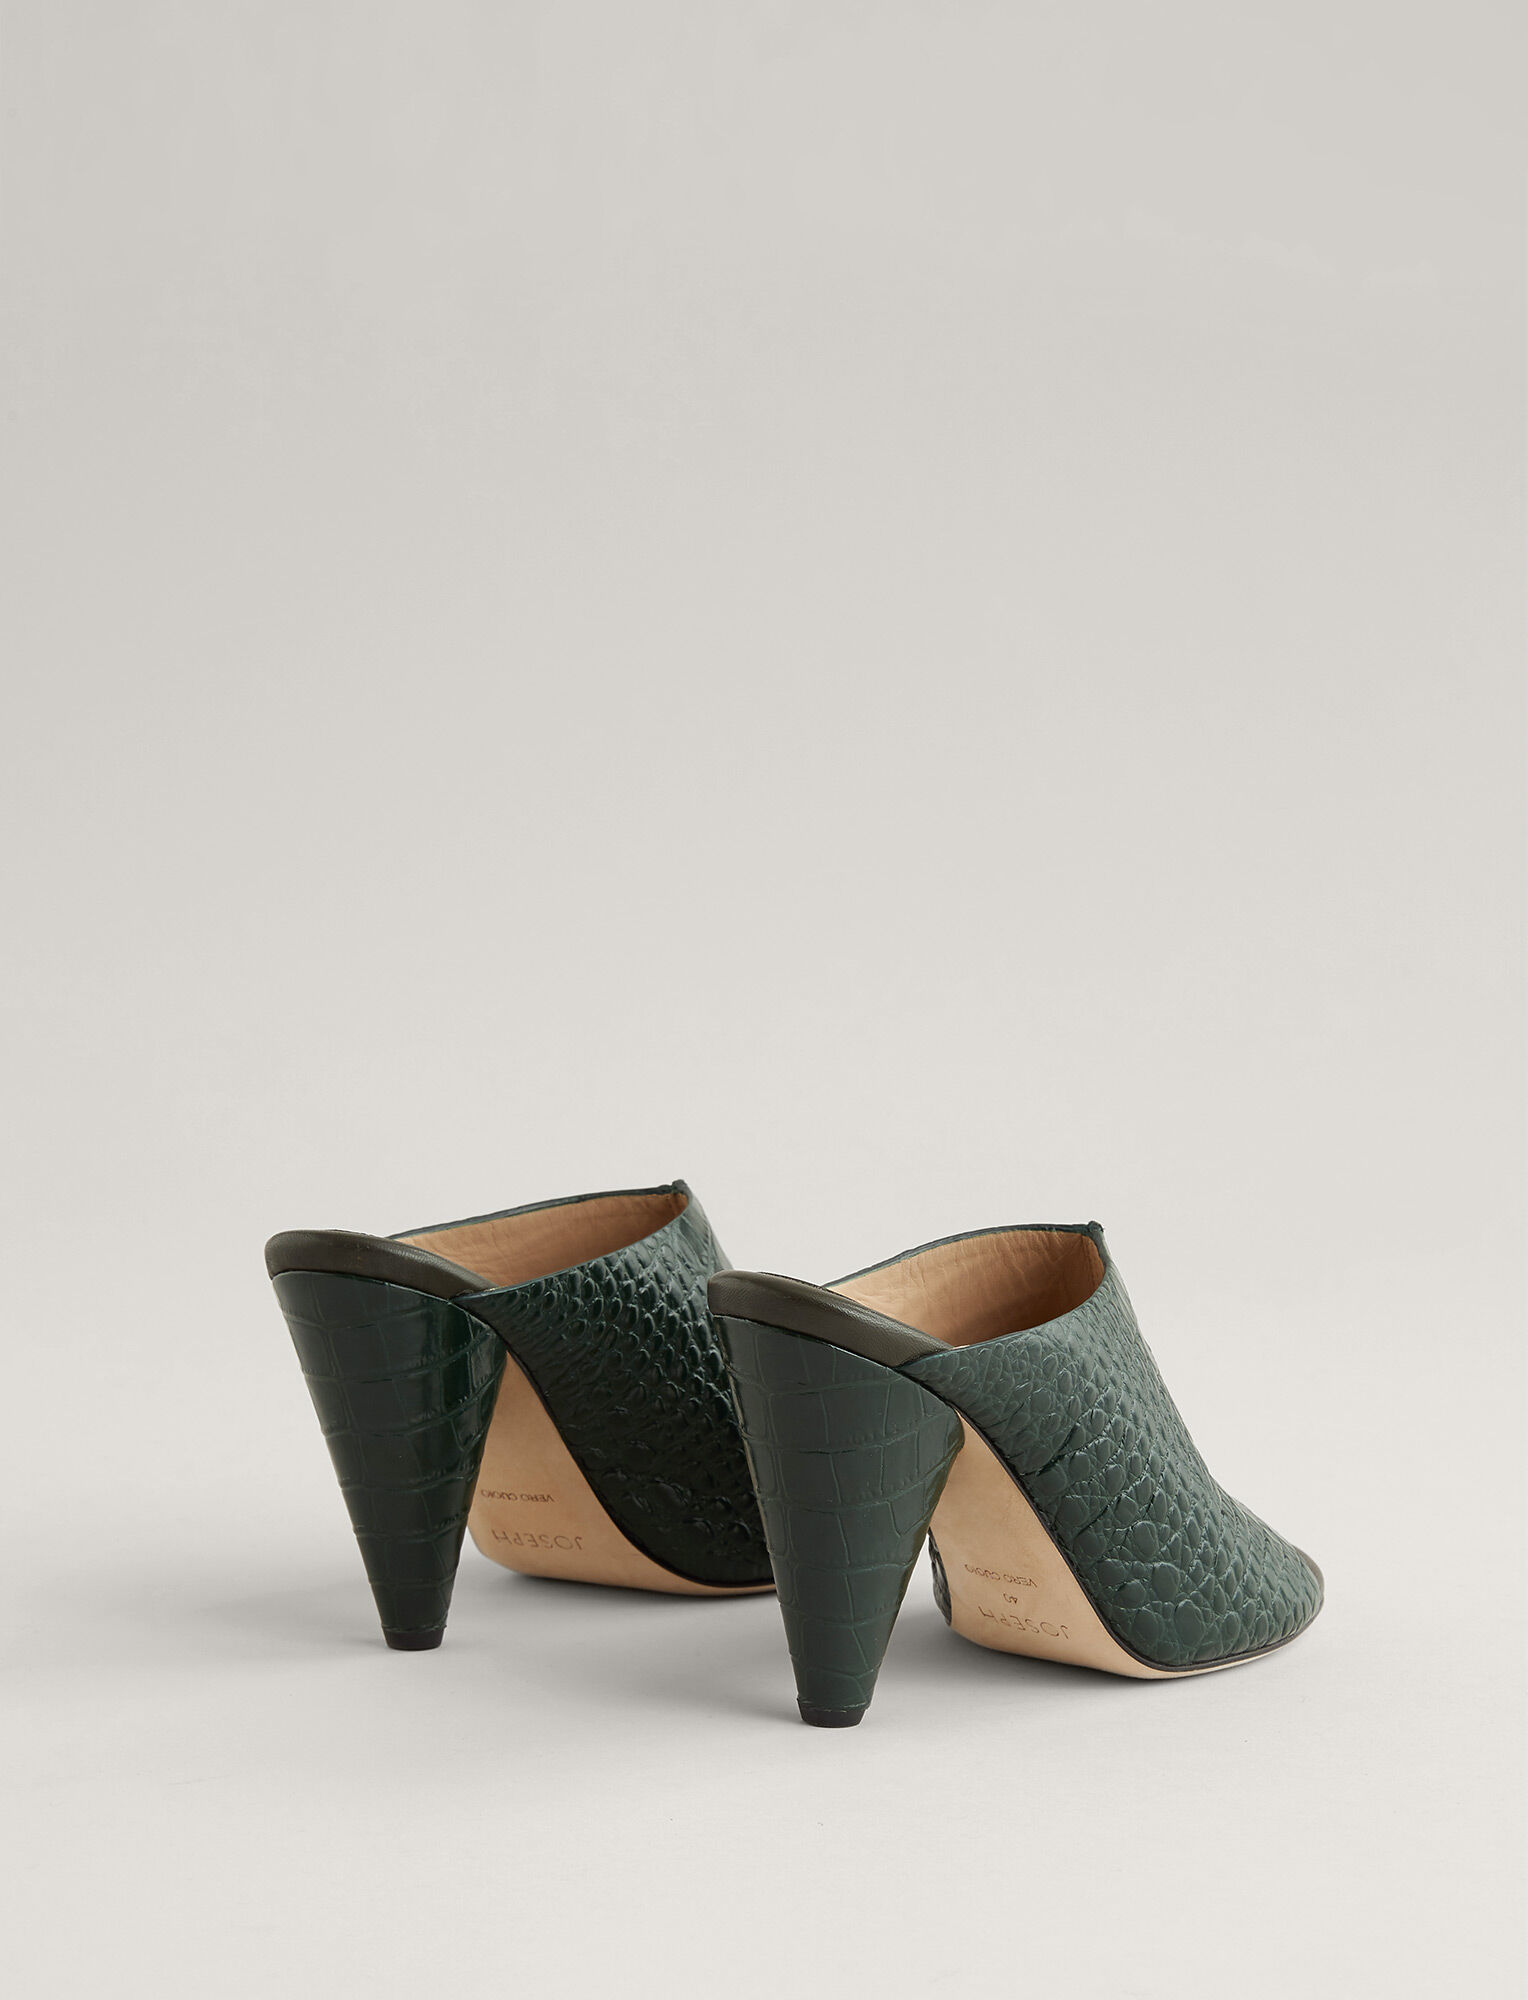 Joseph, Fouzia Leather Heel, in MILITARY